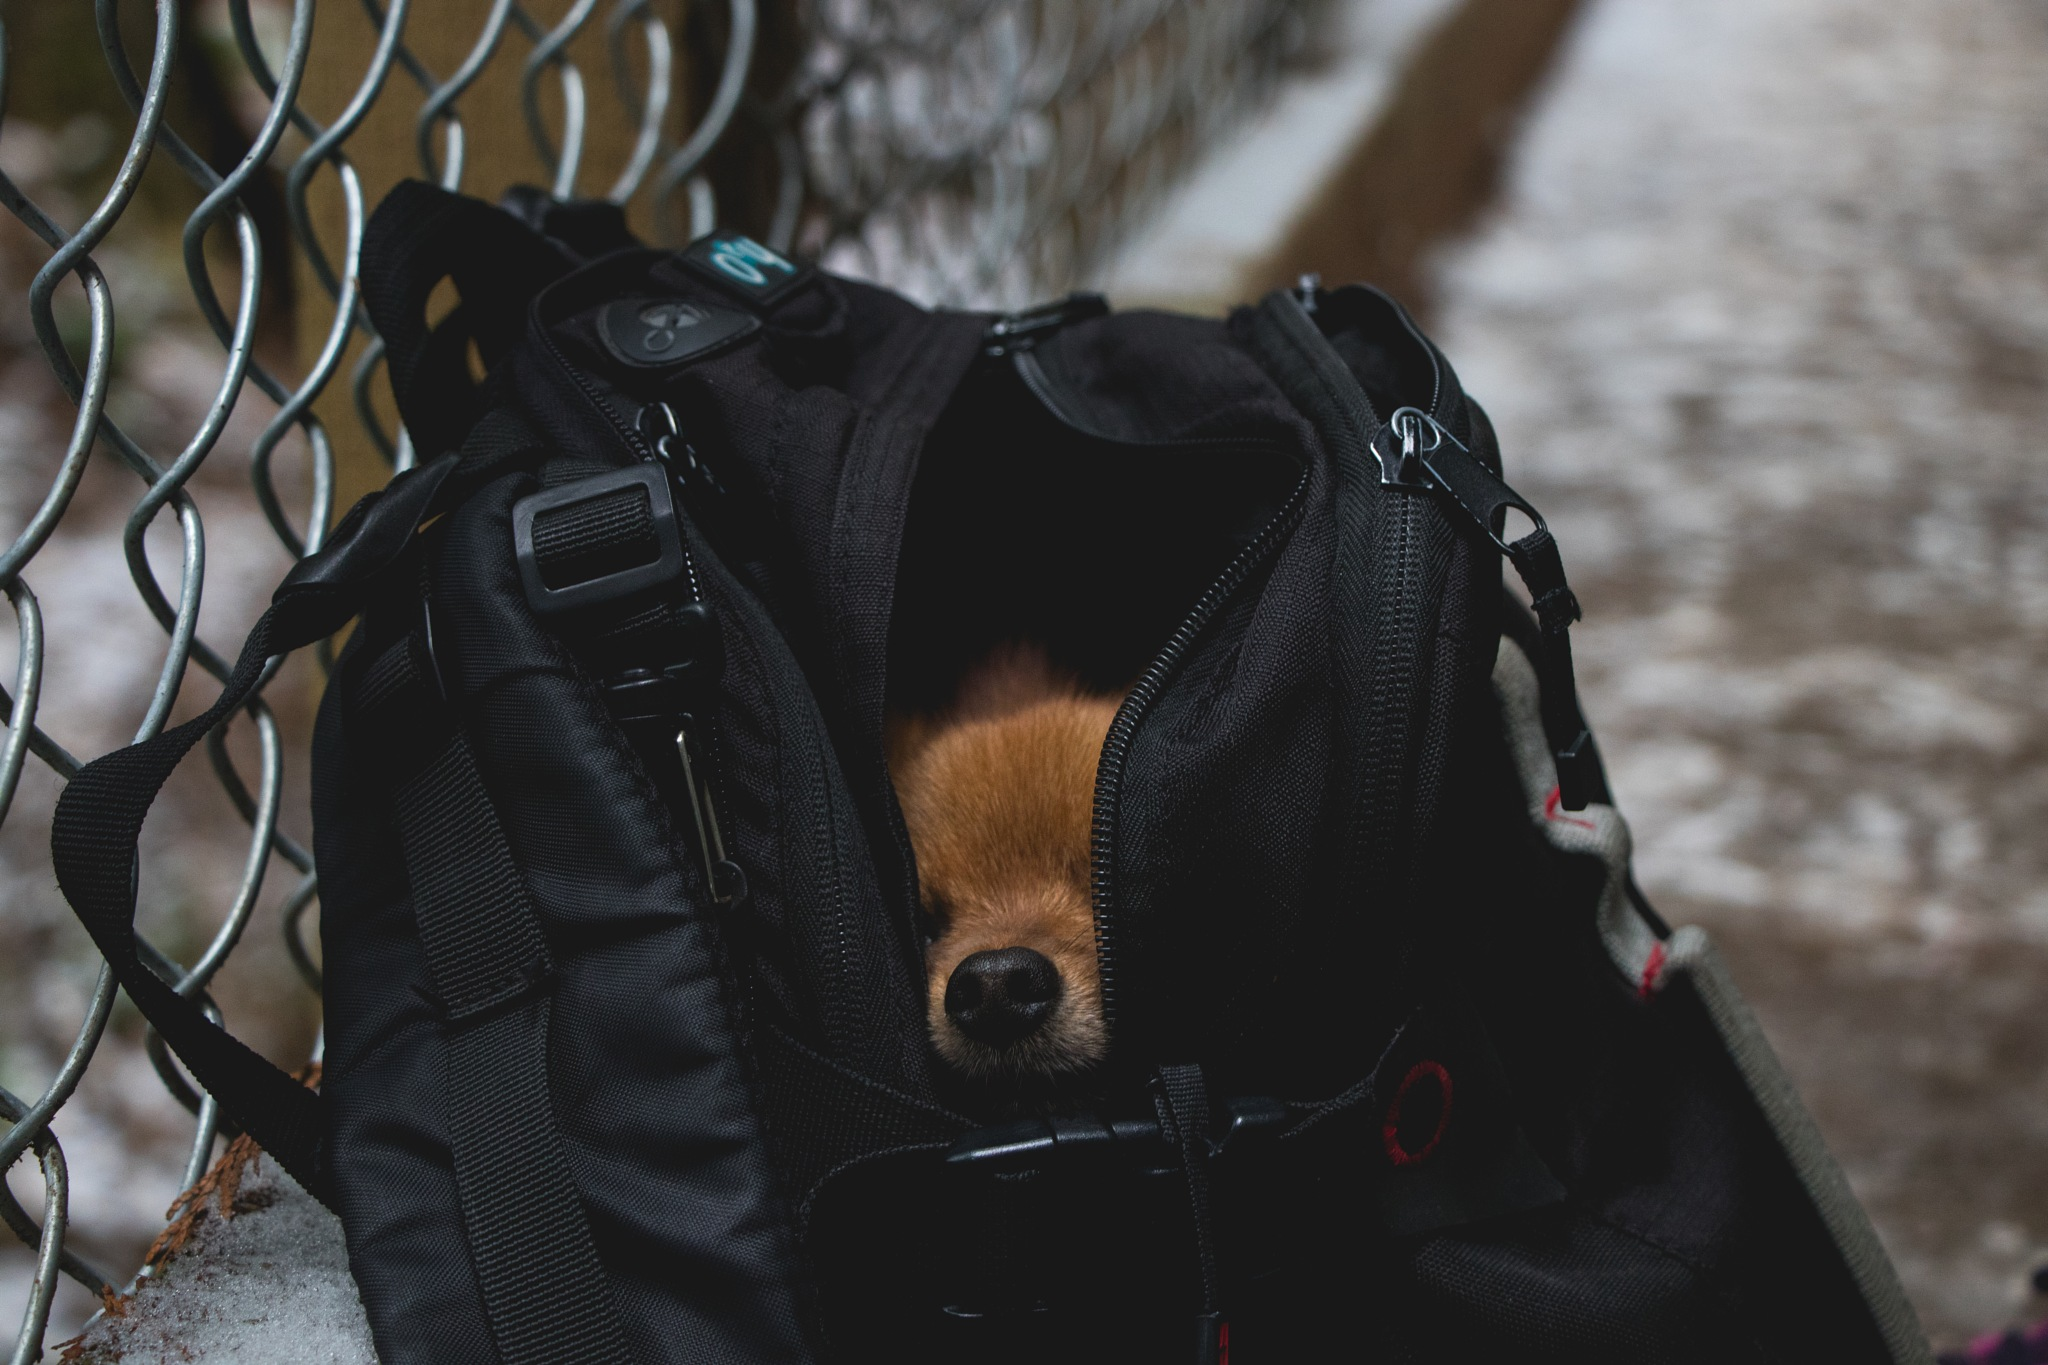 Dog In A Bag by Nathan Smith